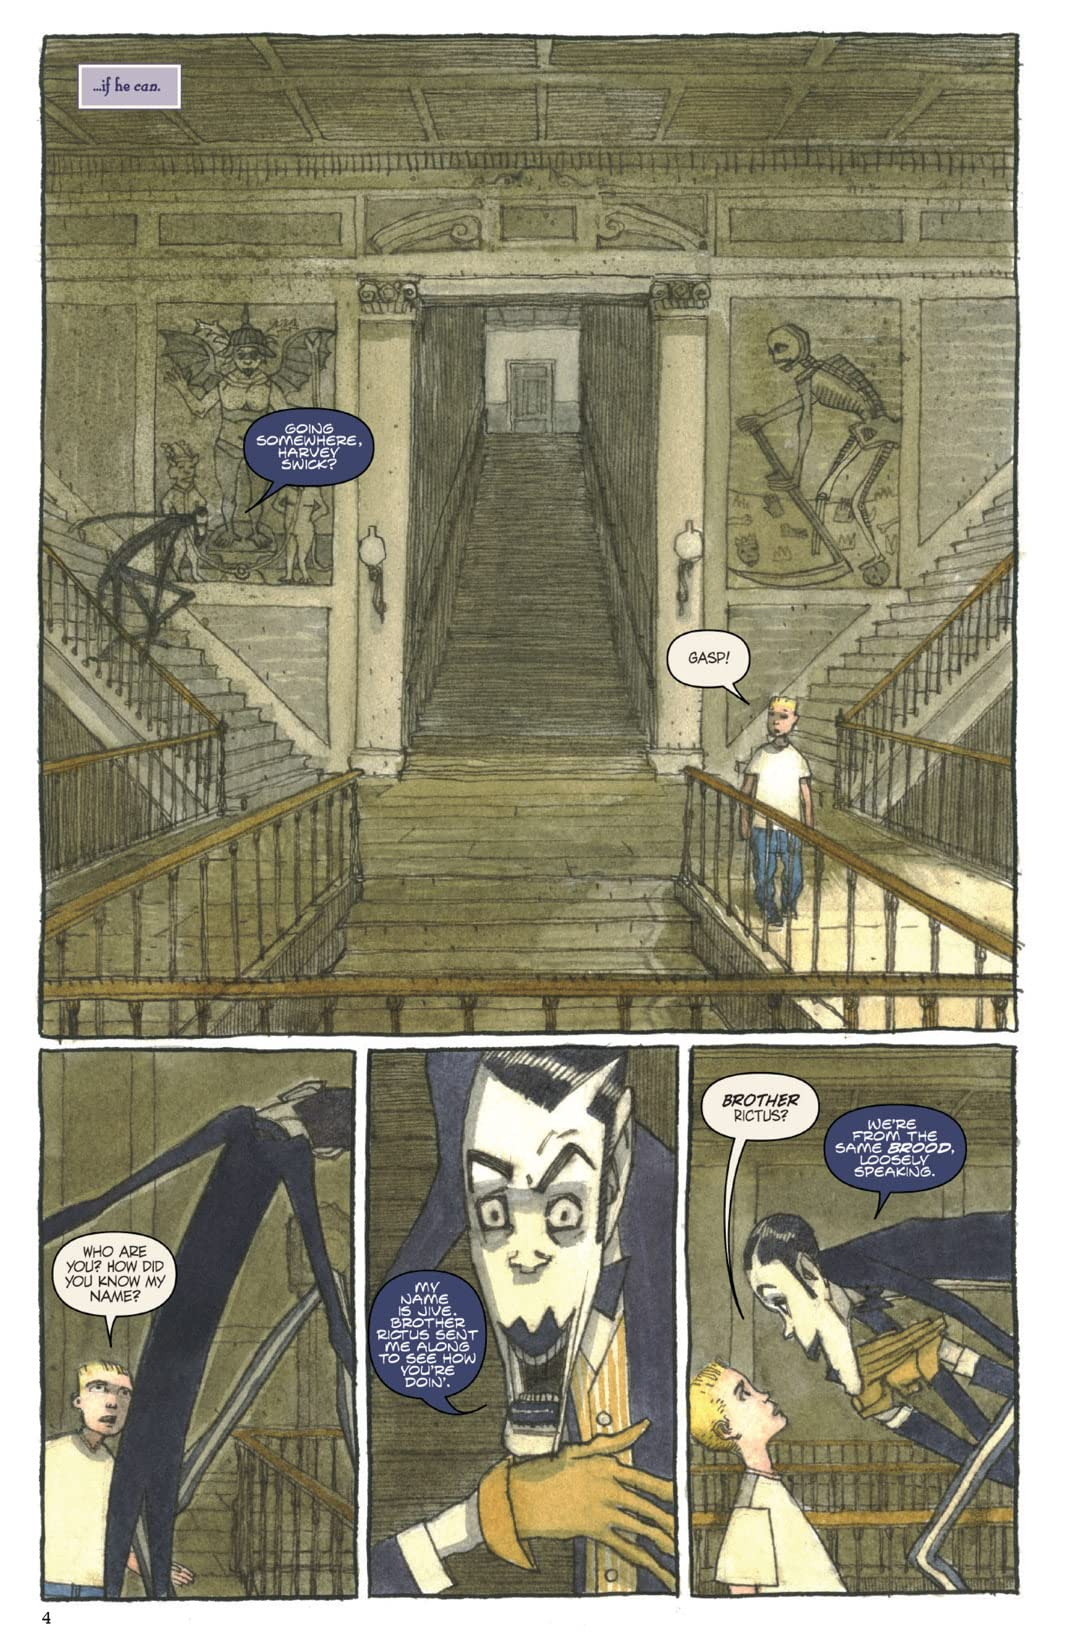 Clive Barker's The Thief of Always Vol. 1 #2